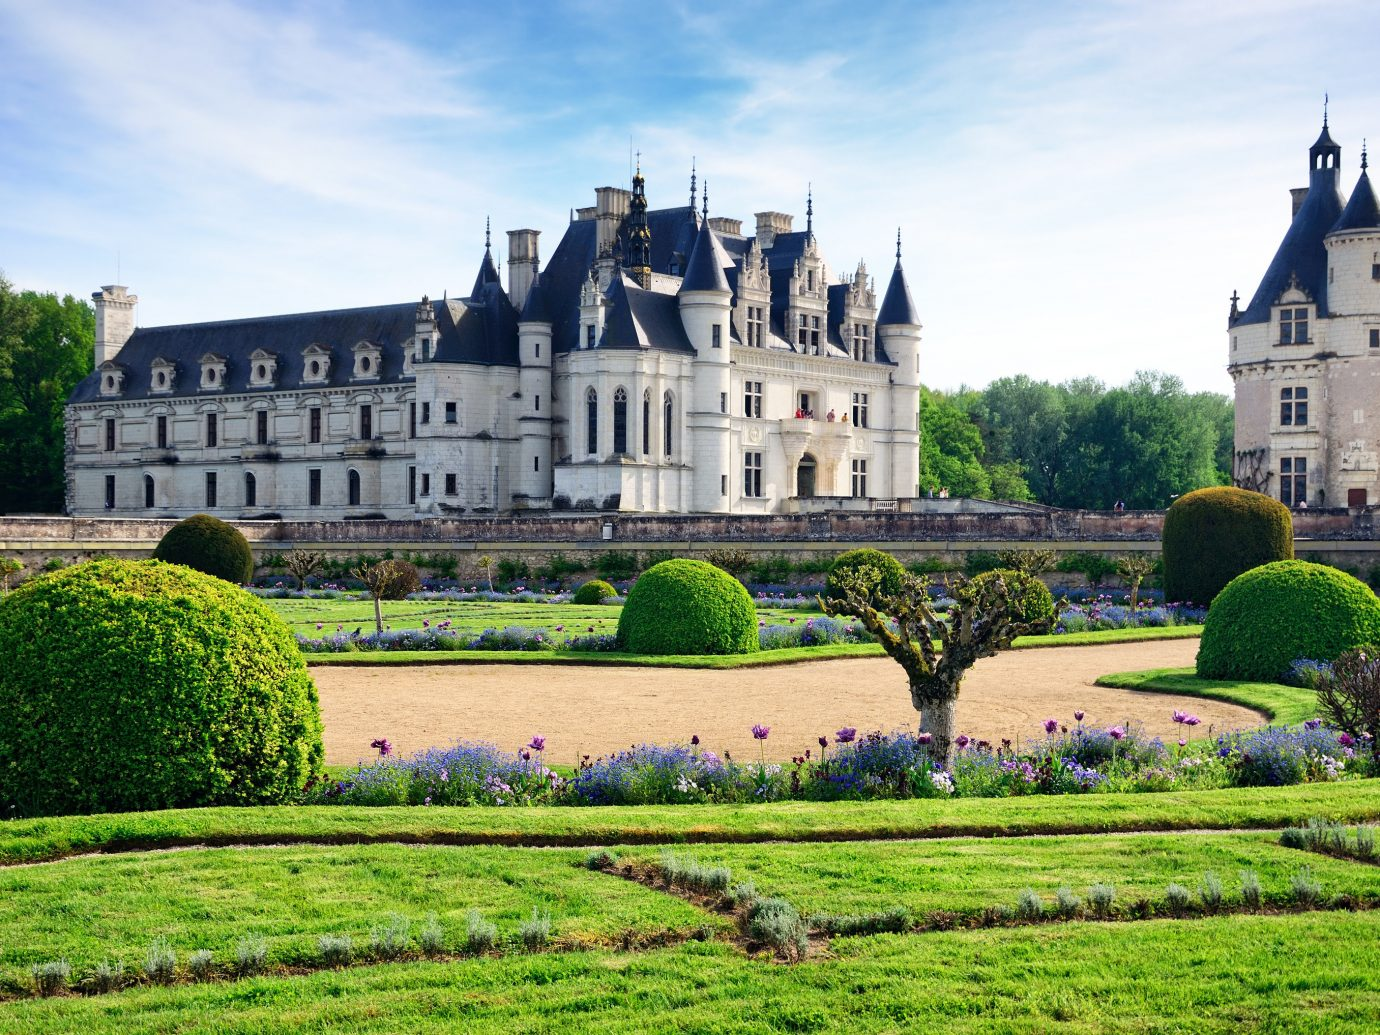 Trip Ideas grass outdoor sky building castle château stately home Church house estate palace tourism monastery old manor house Garden abbey stone surrounded